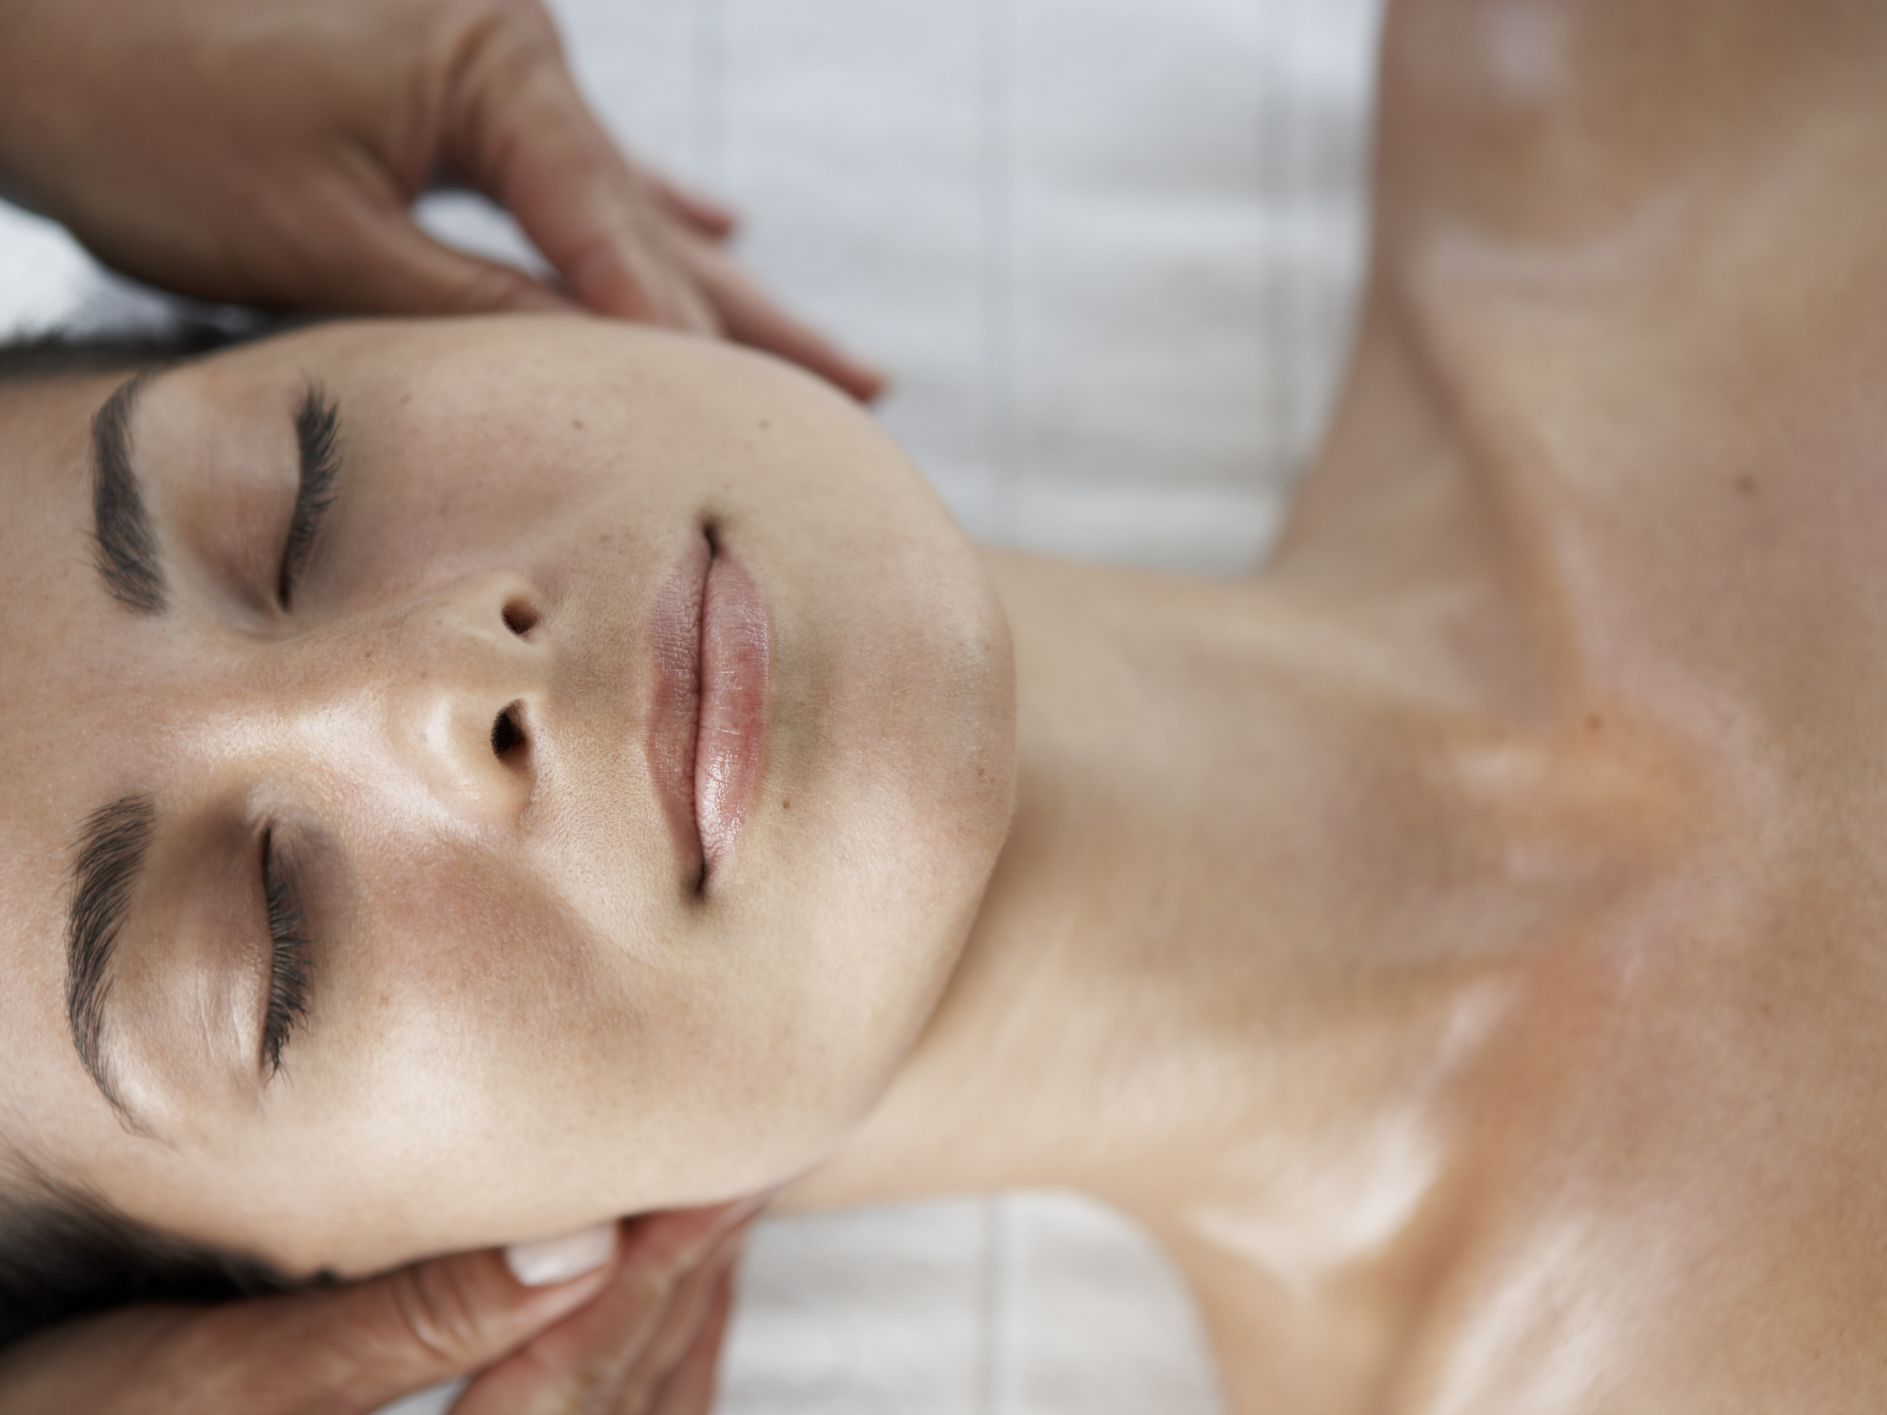 Massage Therapy For Tmj Pain